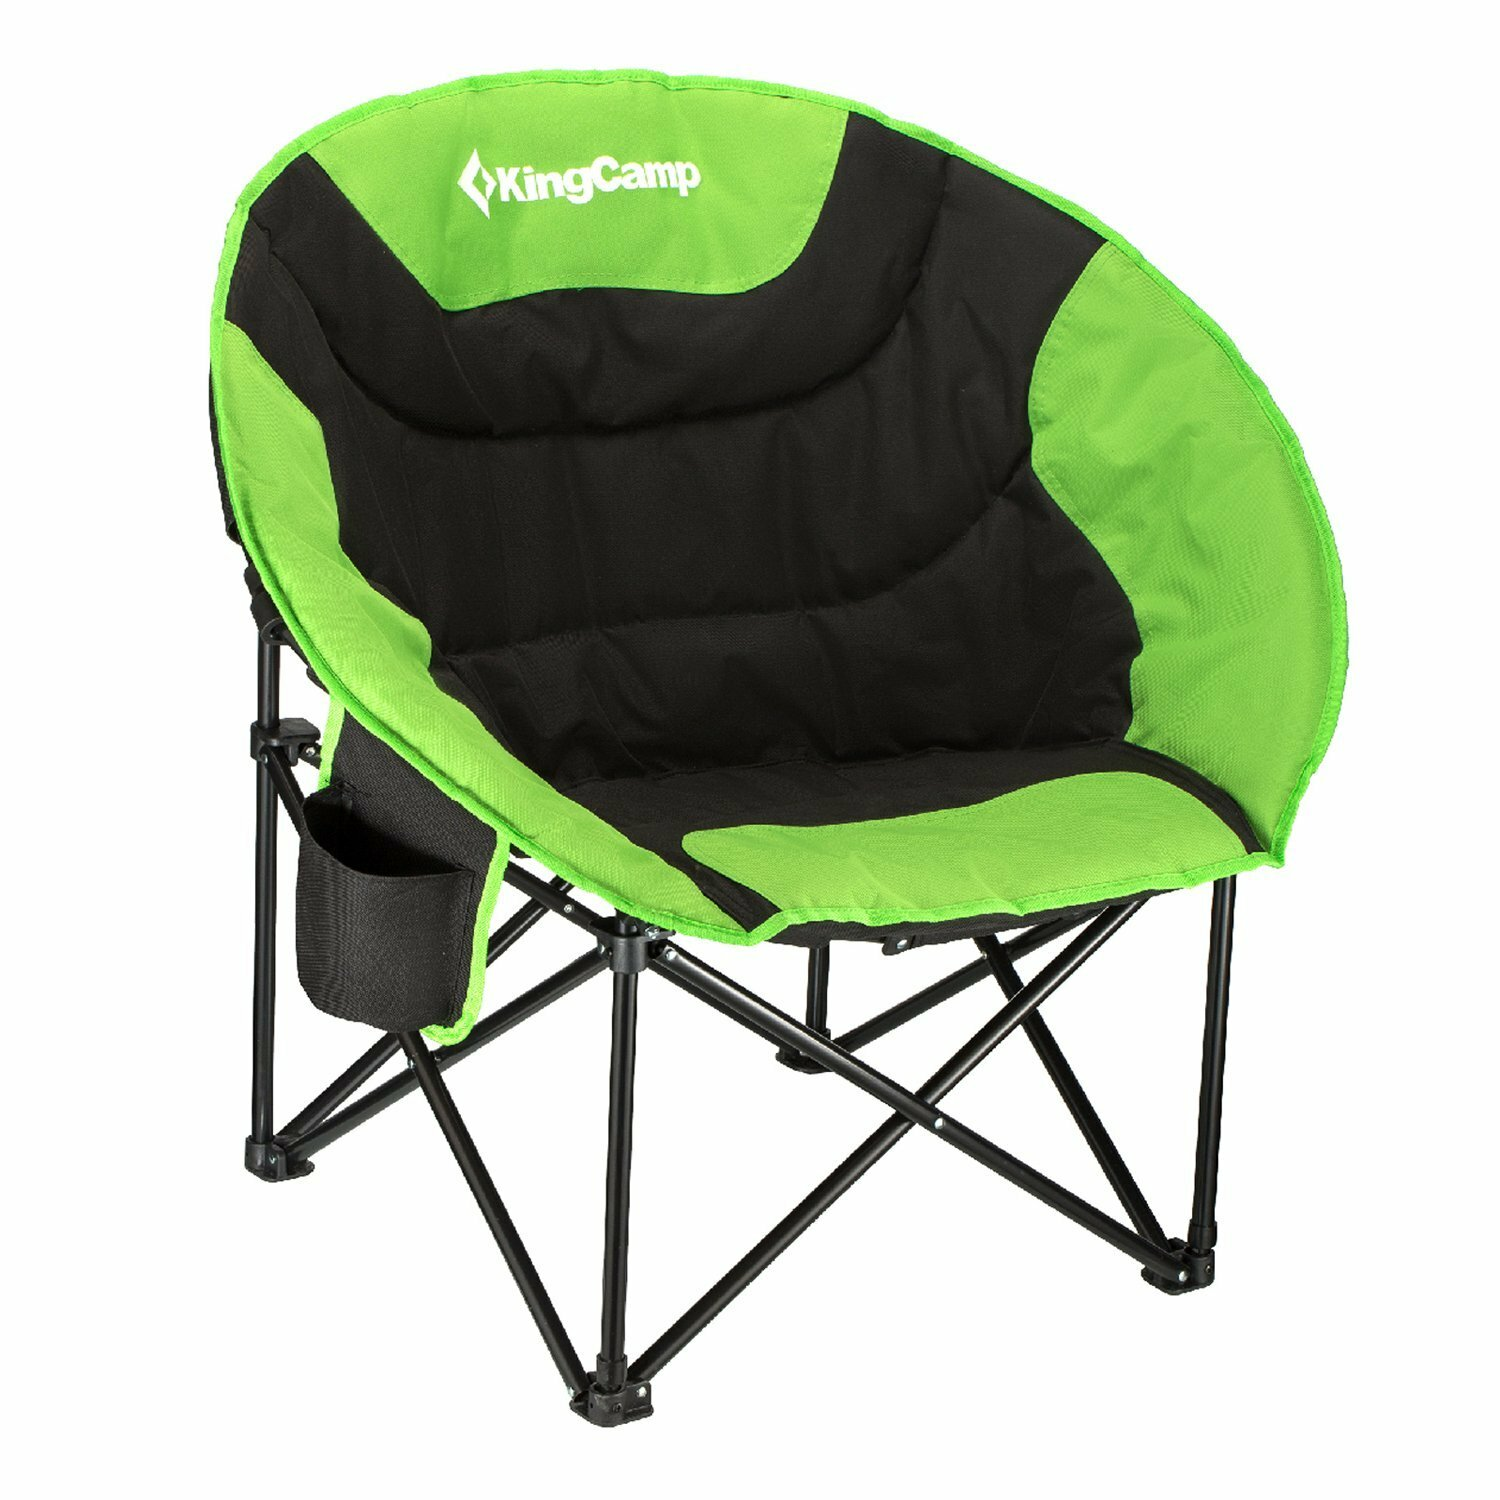 Kingcamp Moon Saucer Folding Camping Chair With Carry Bag | Wayfair